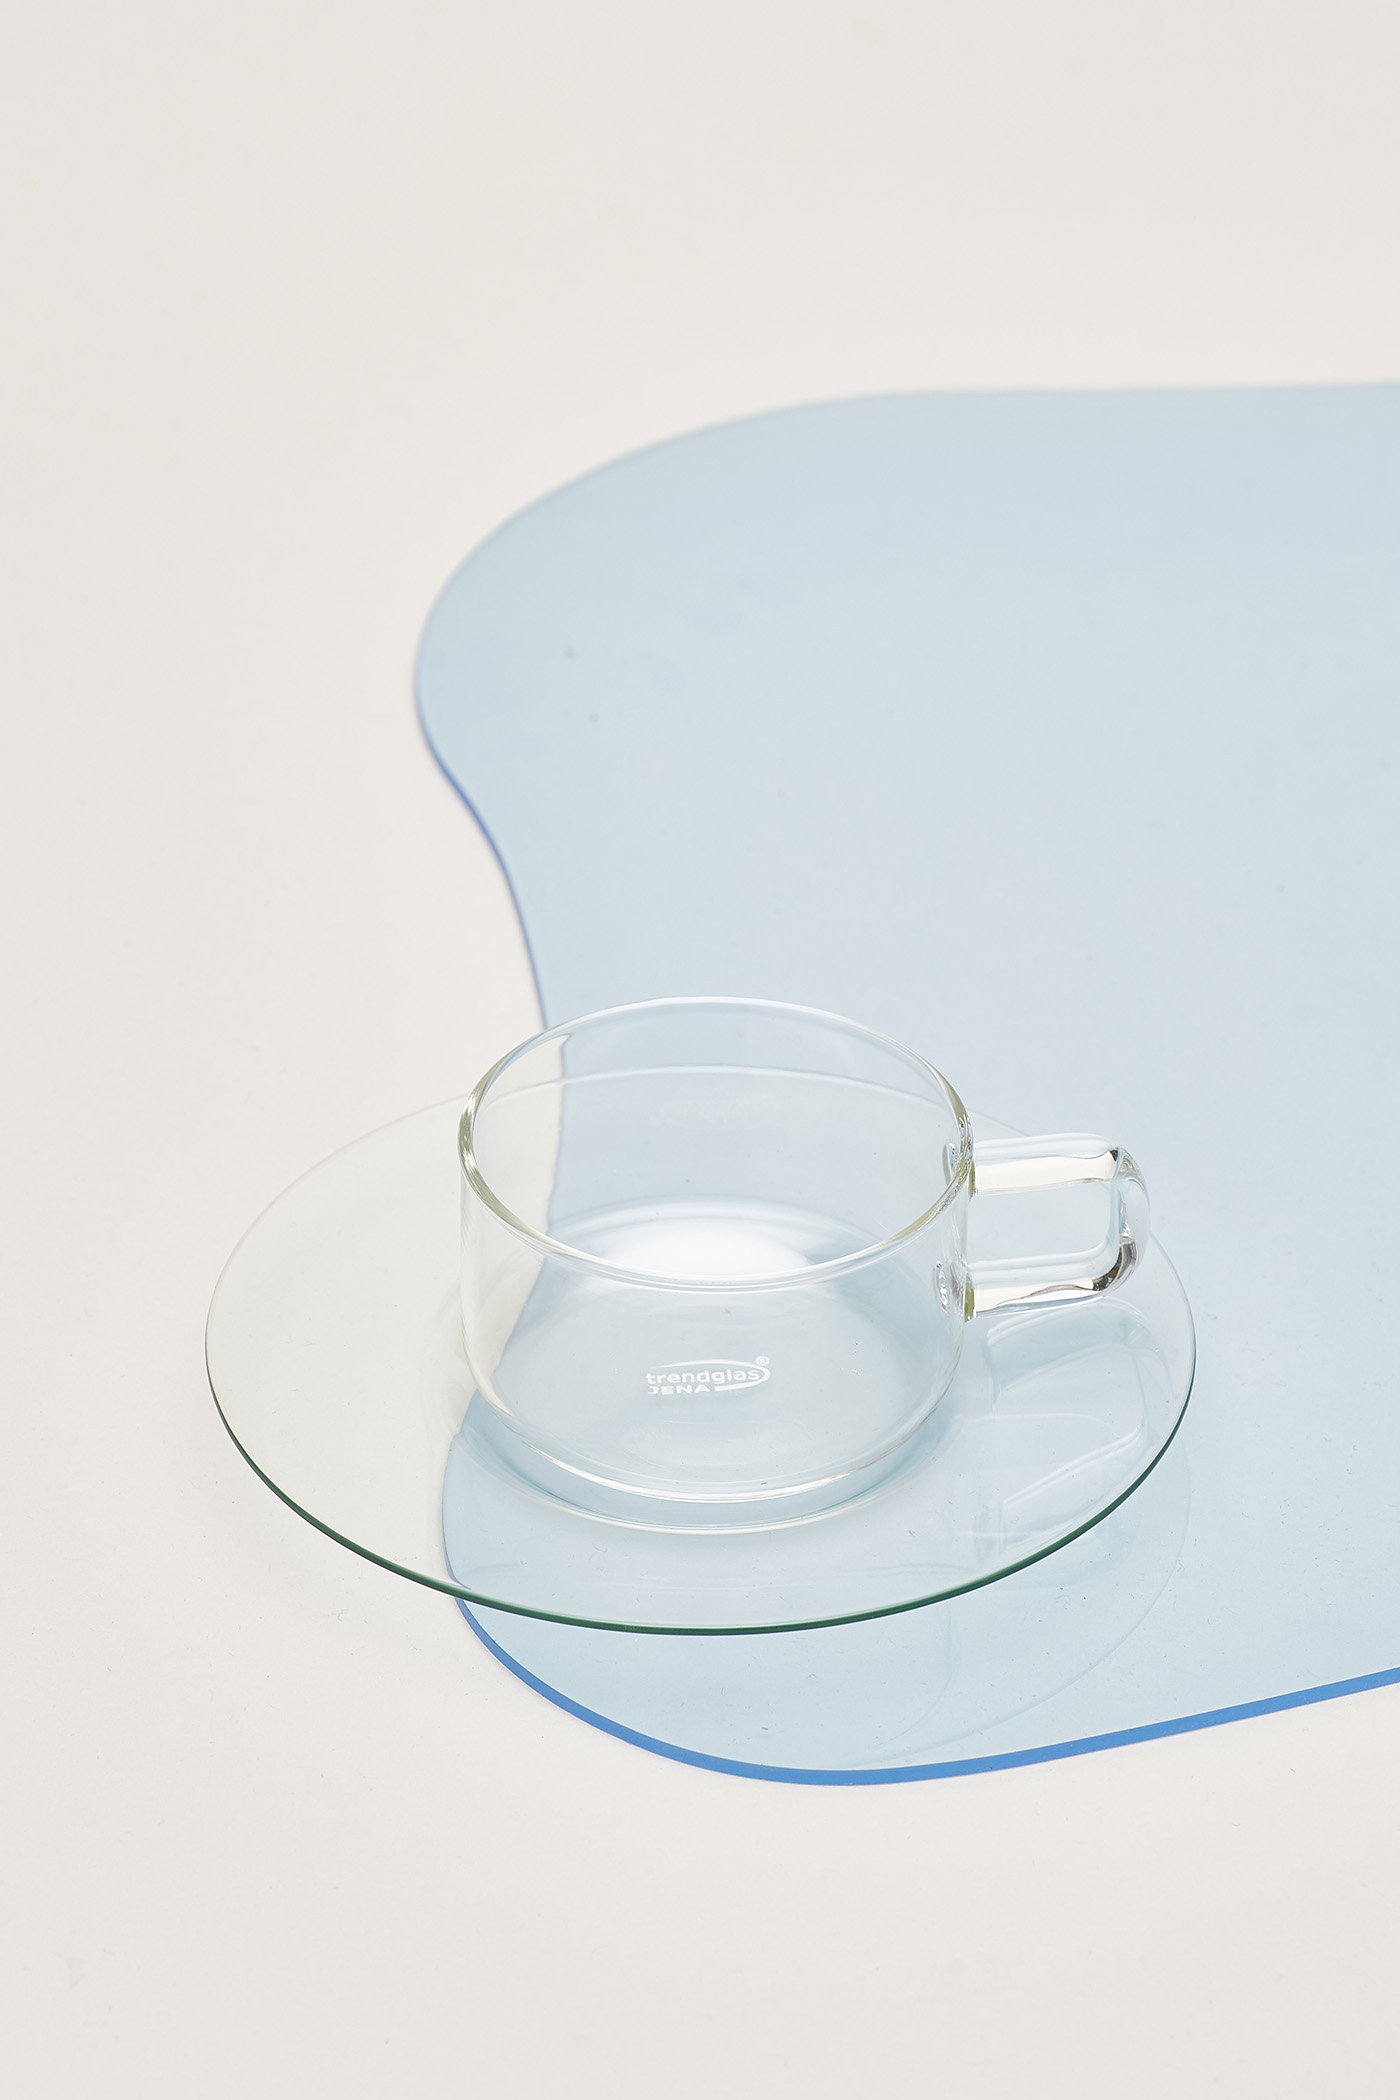 Trendglas Linea Cup with Saucer